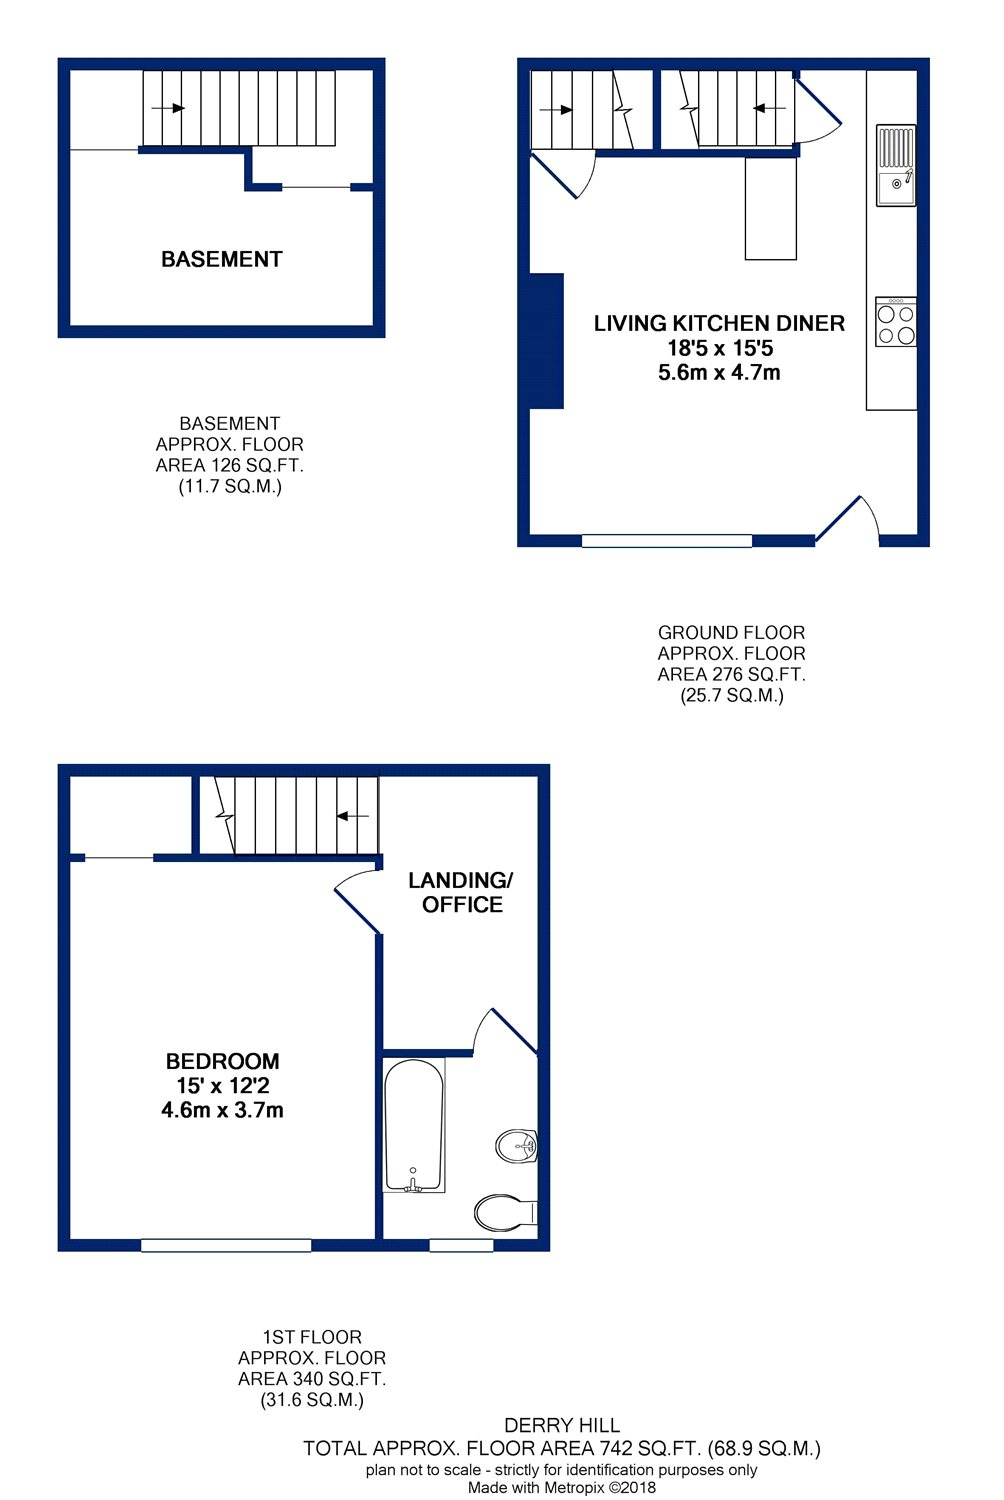 1 Bedrooms Terraced house for sale in Derry Hill, Menston, Ilkley, West Yorkshire LS29